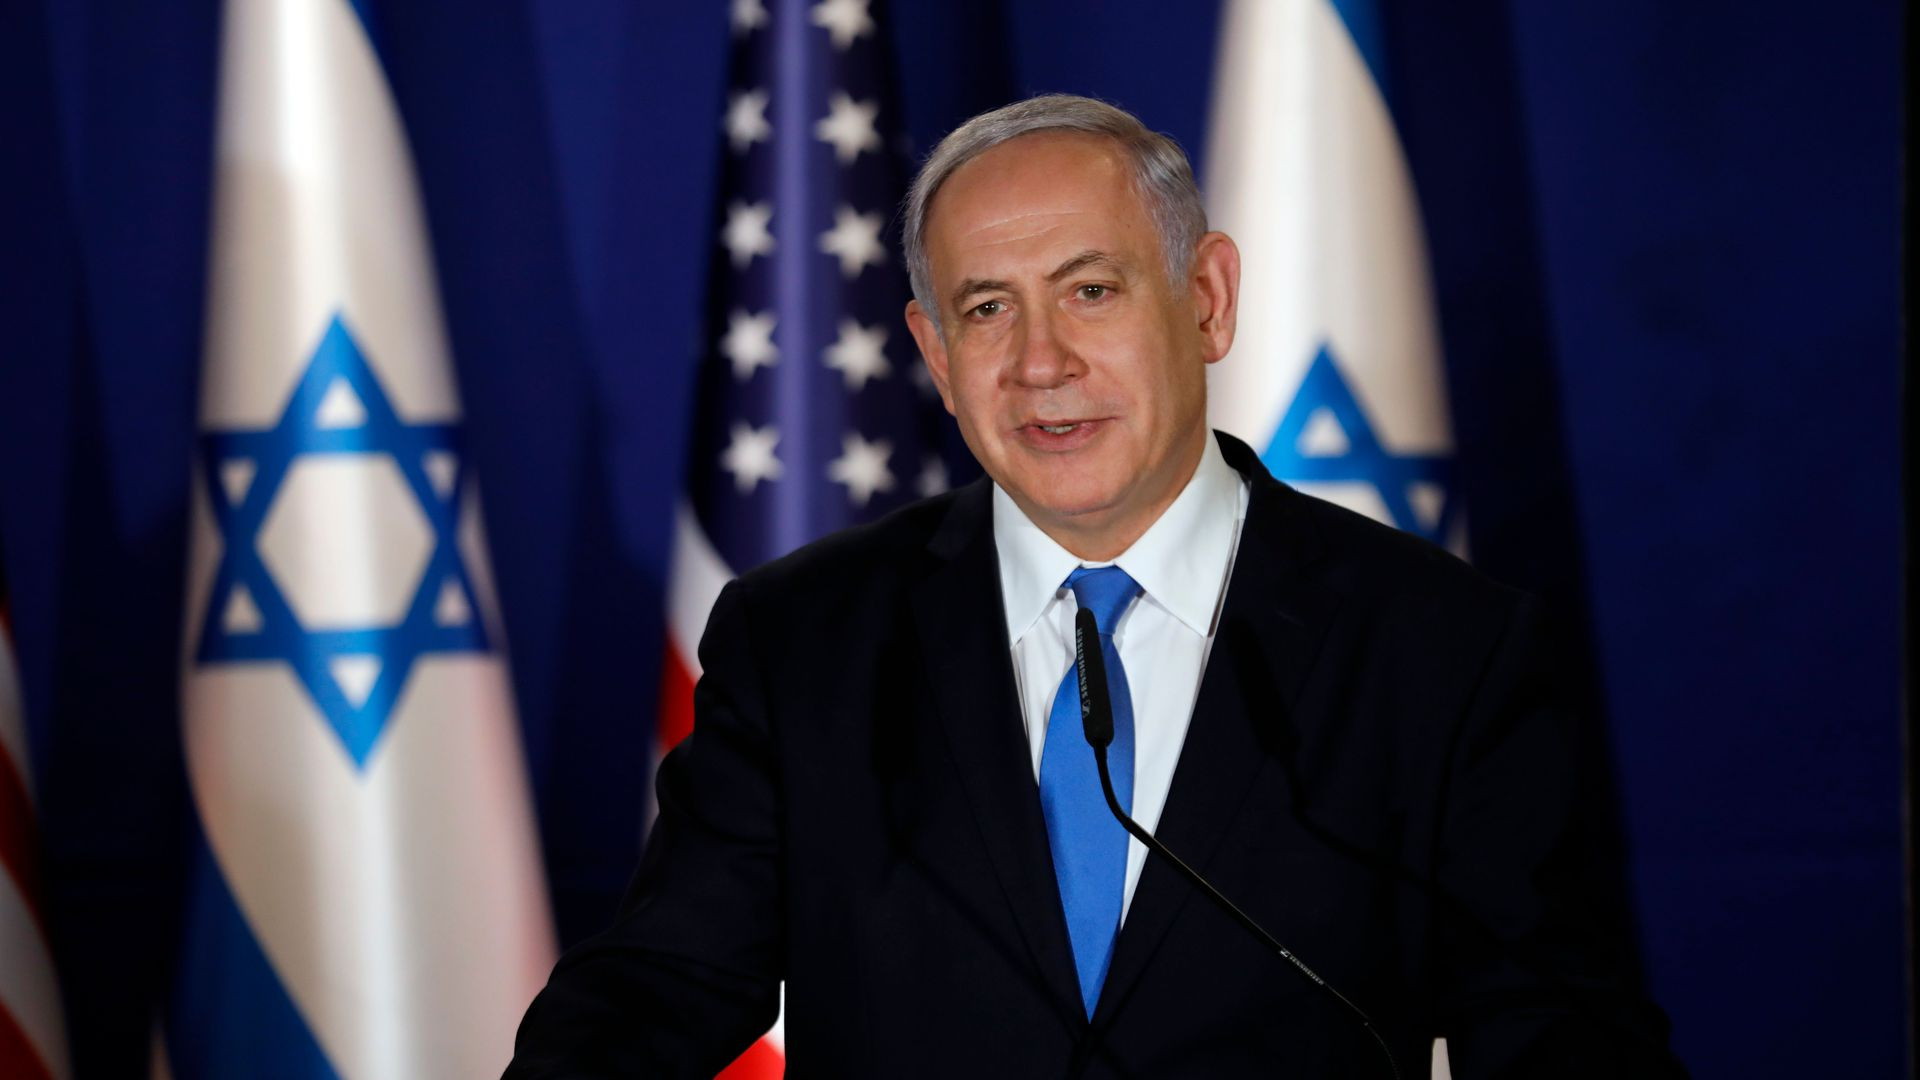 Netanyahu's re-election campaign is coming to D.C.